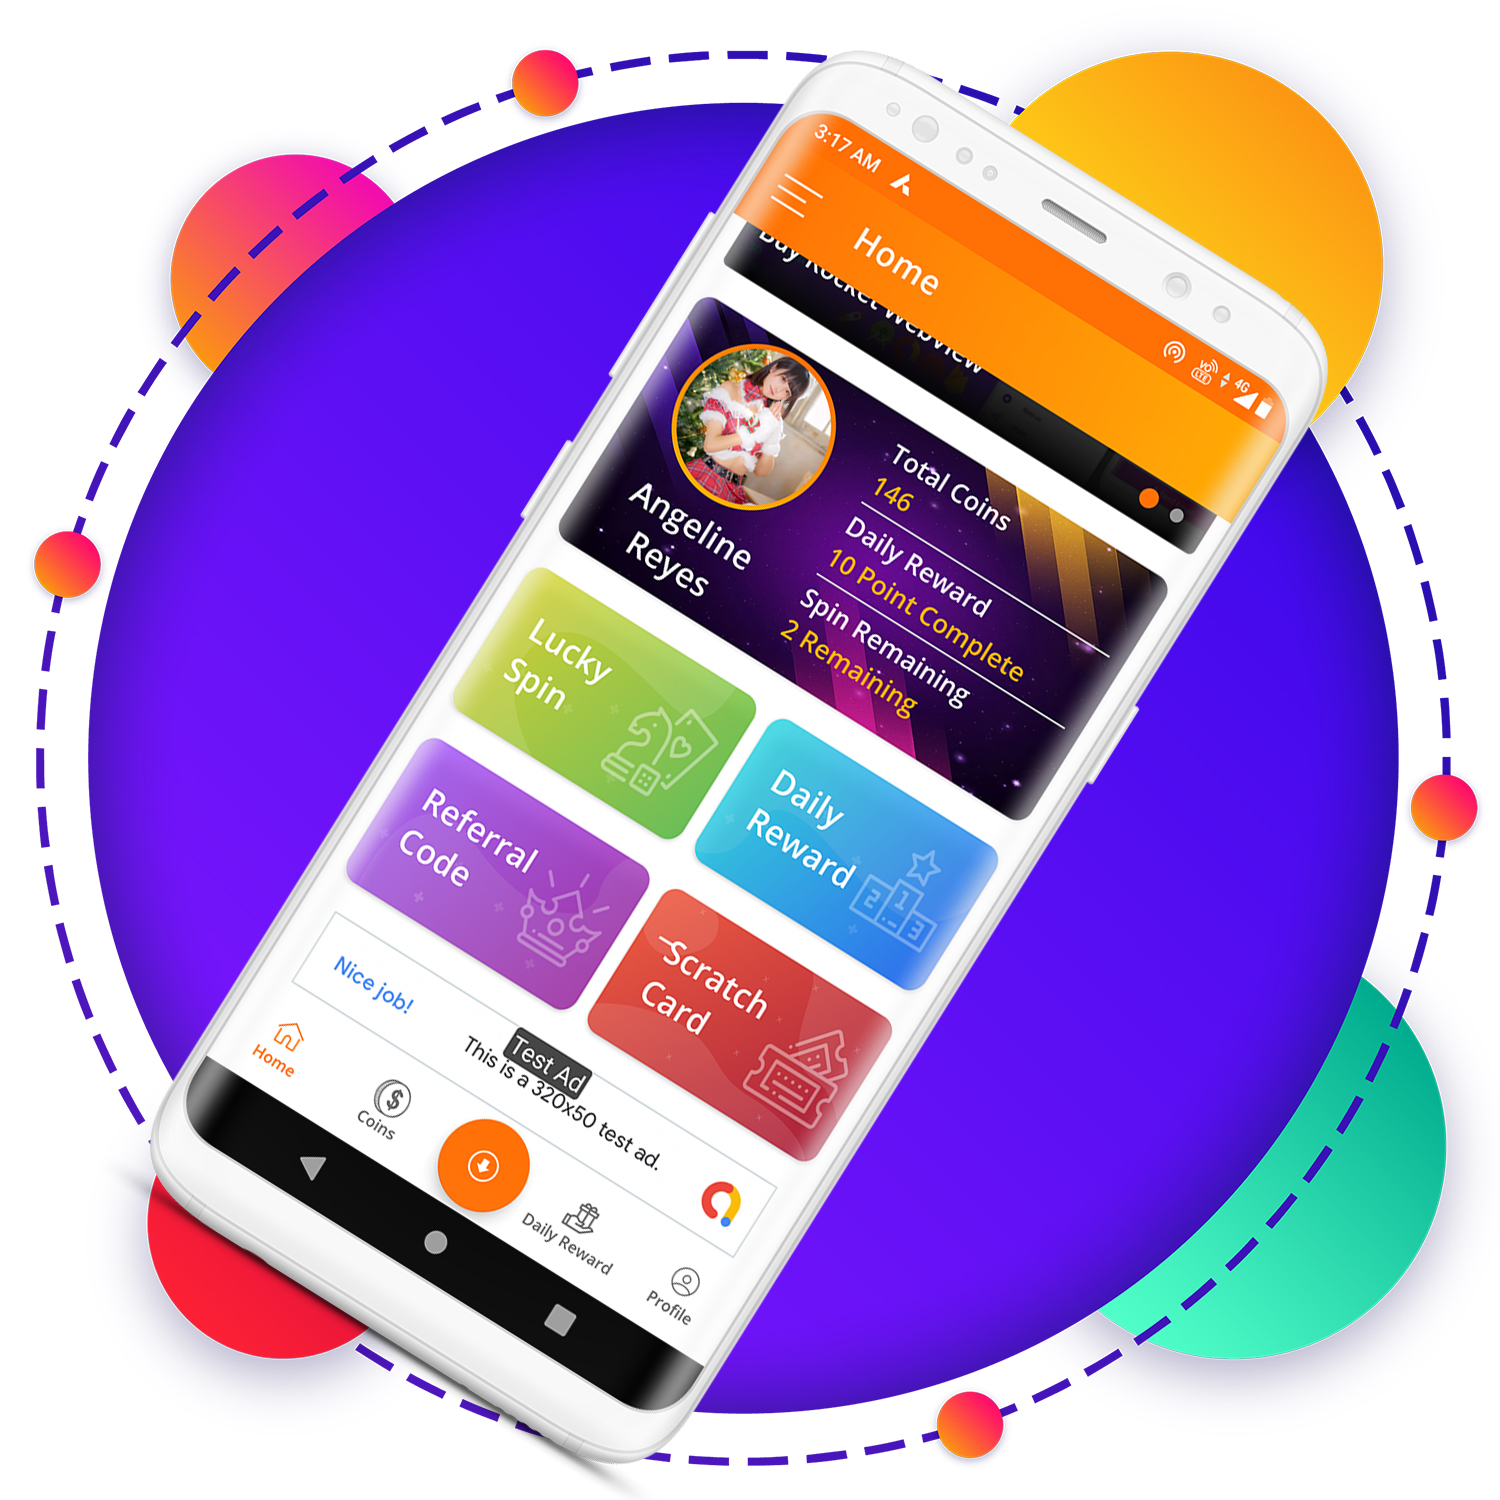 QuickCash All In One Money Earning Android App + Games + WhatsApp Tools + Earning System Admin Panel - 5